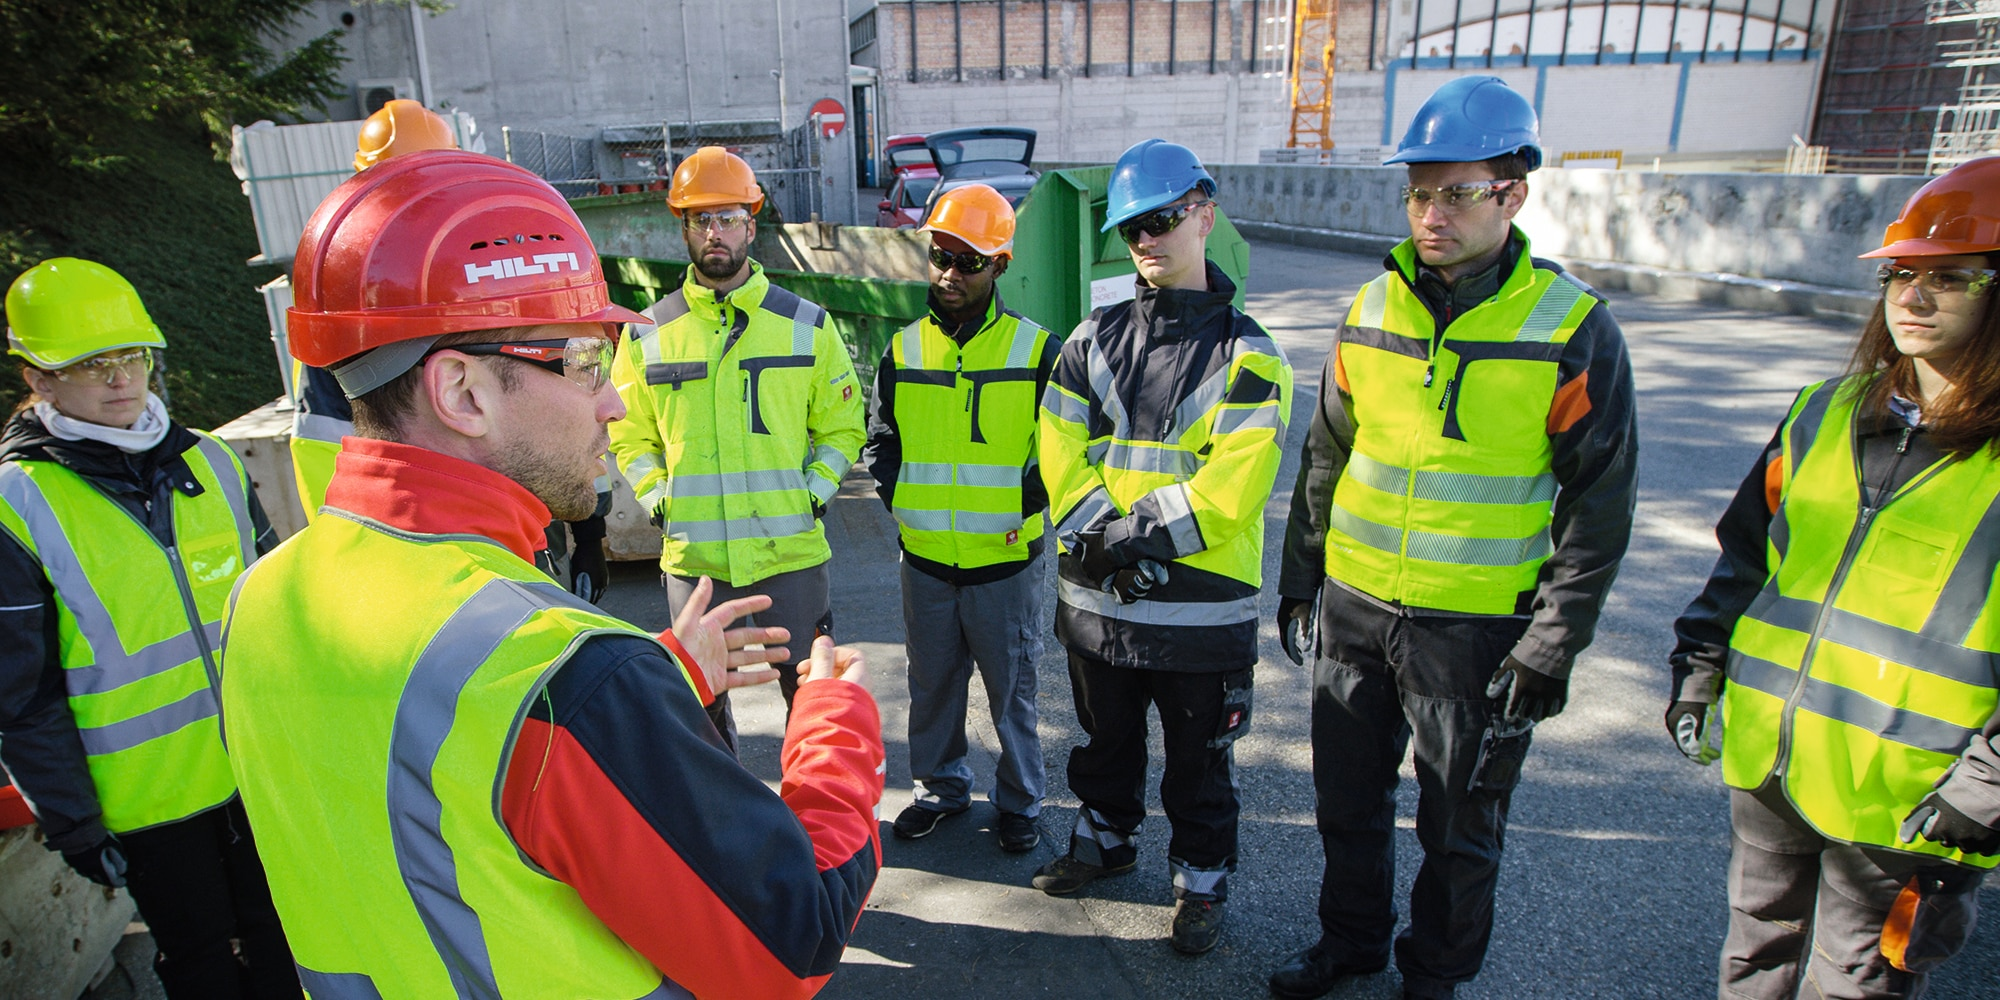 A2_NZ_Hilti_training